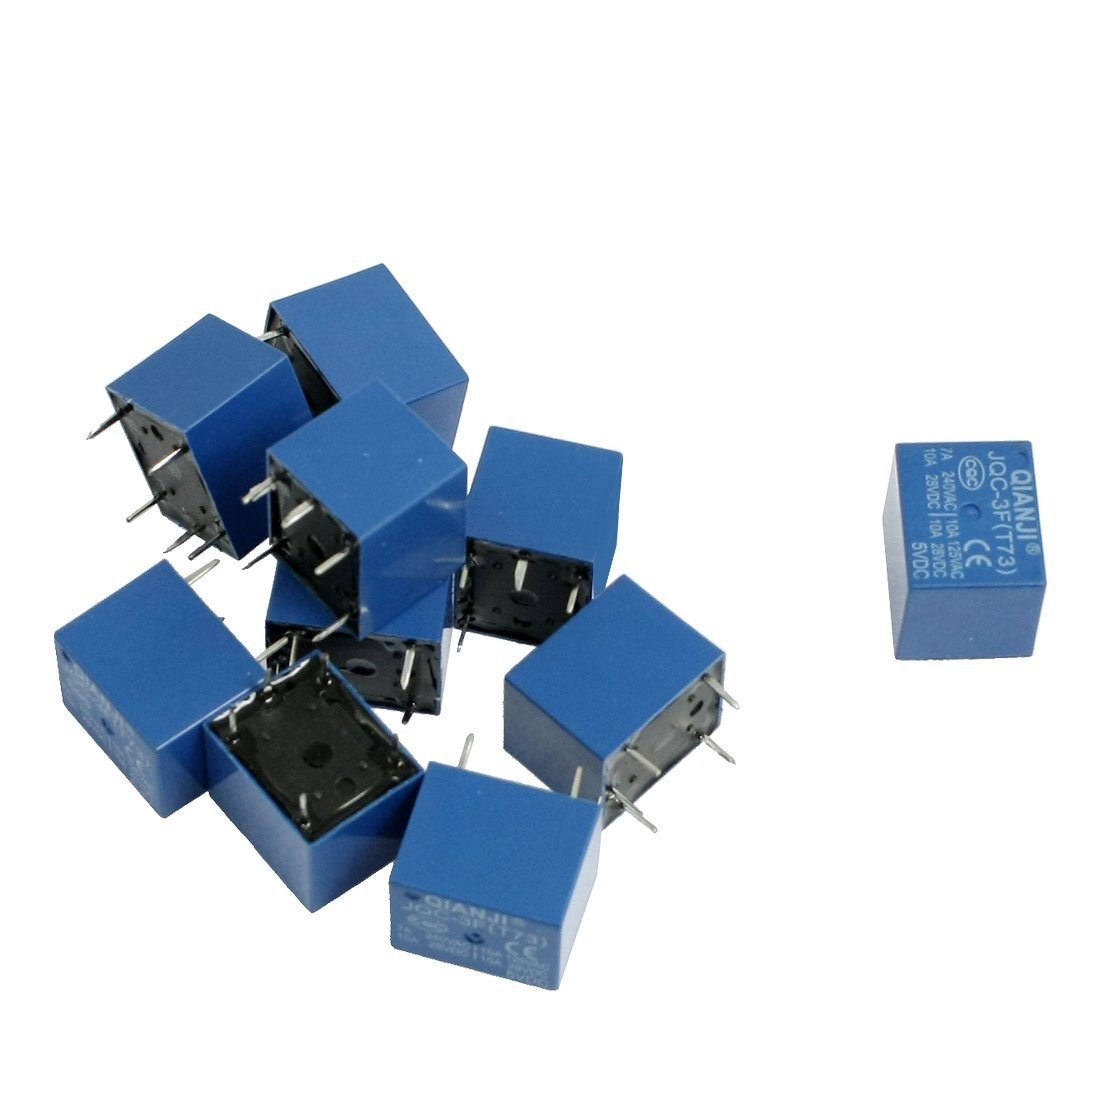 10 Pcs Dc 5v Coil 7a 240vac 10a 125vac 28vdc 5 Pins Spst Power Relay Fire Inc Restaurant System Parts Ansulstyle Dpdt Microswitch Jqc 3f Diy Tools